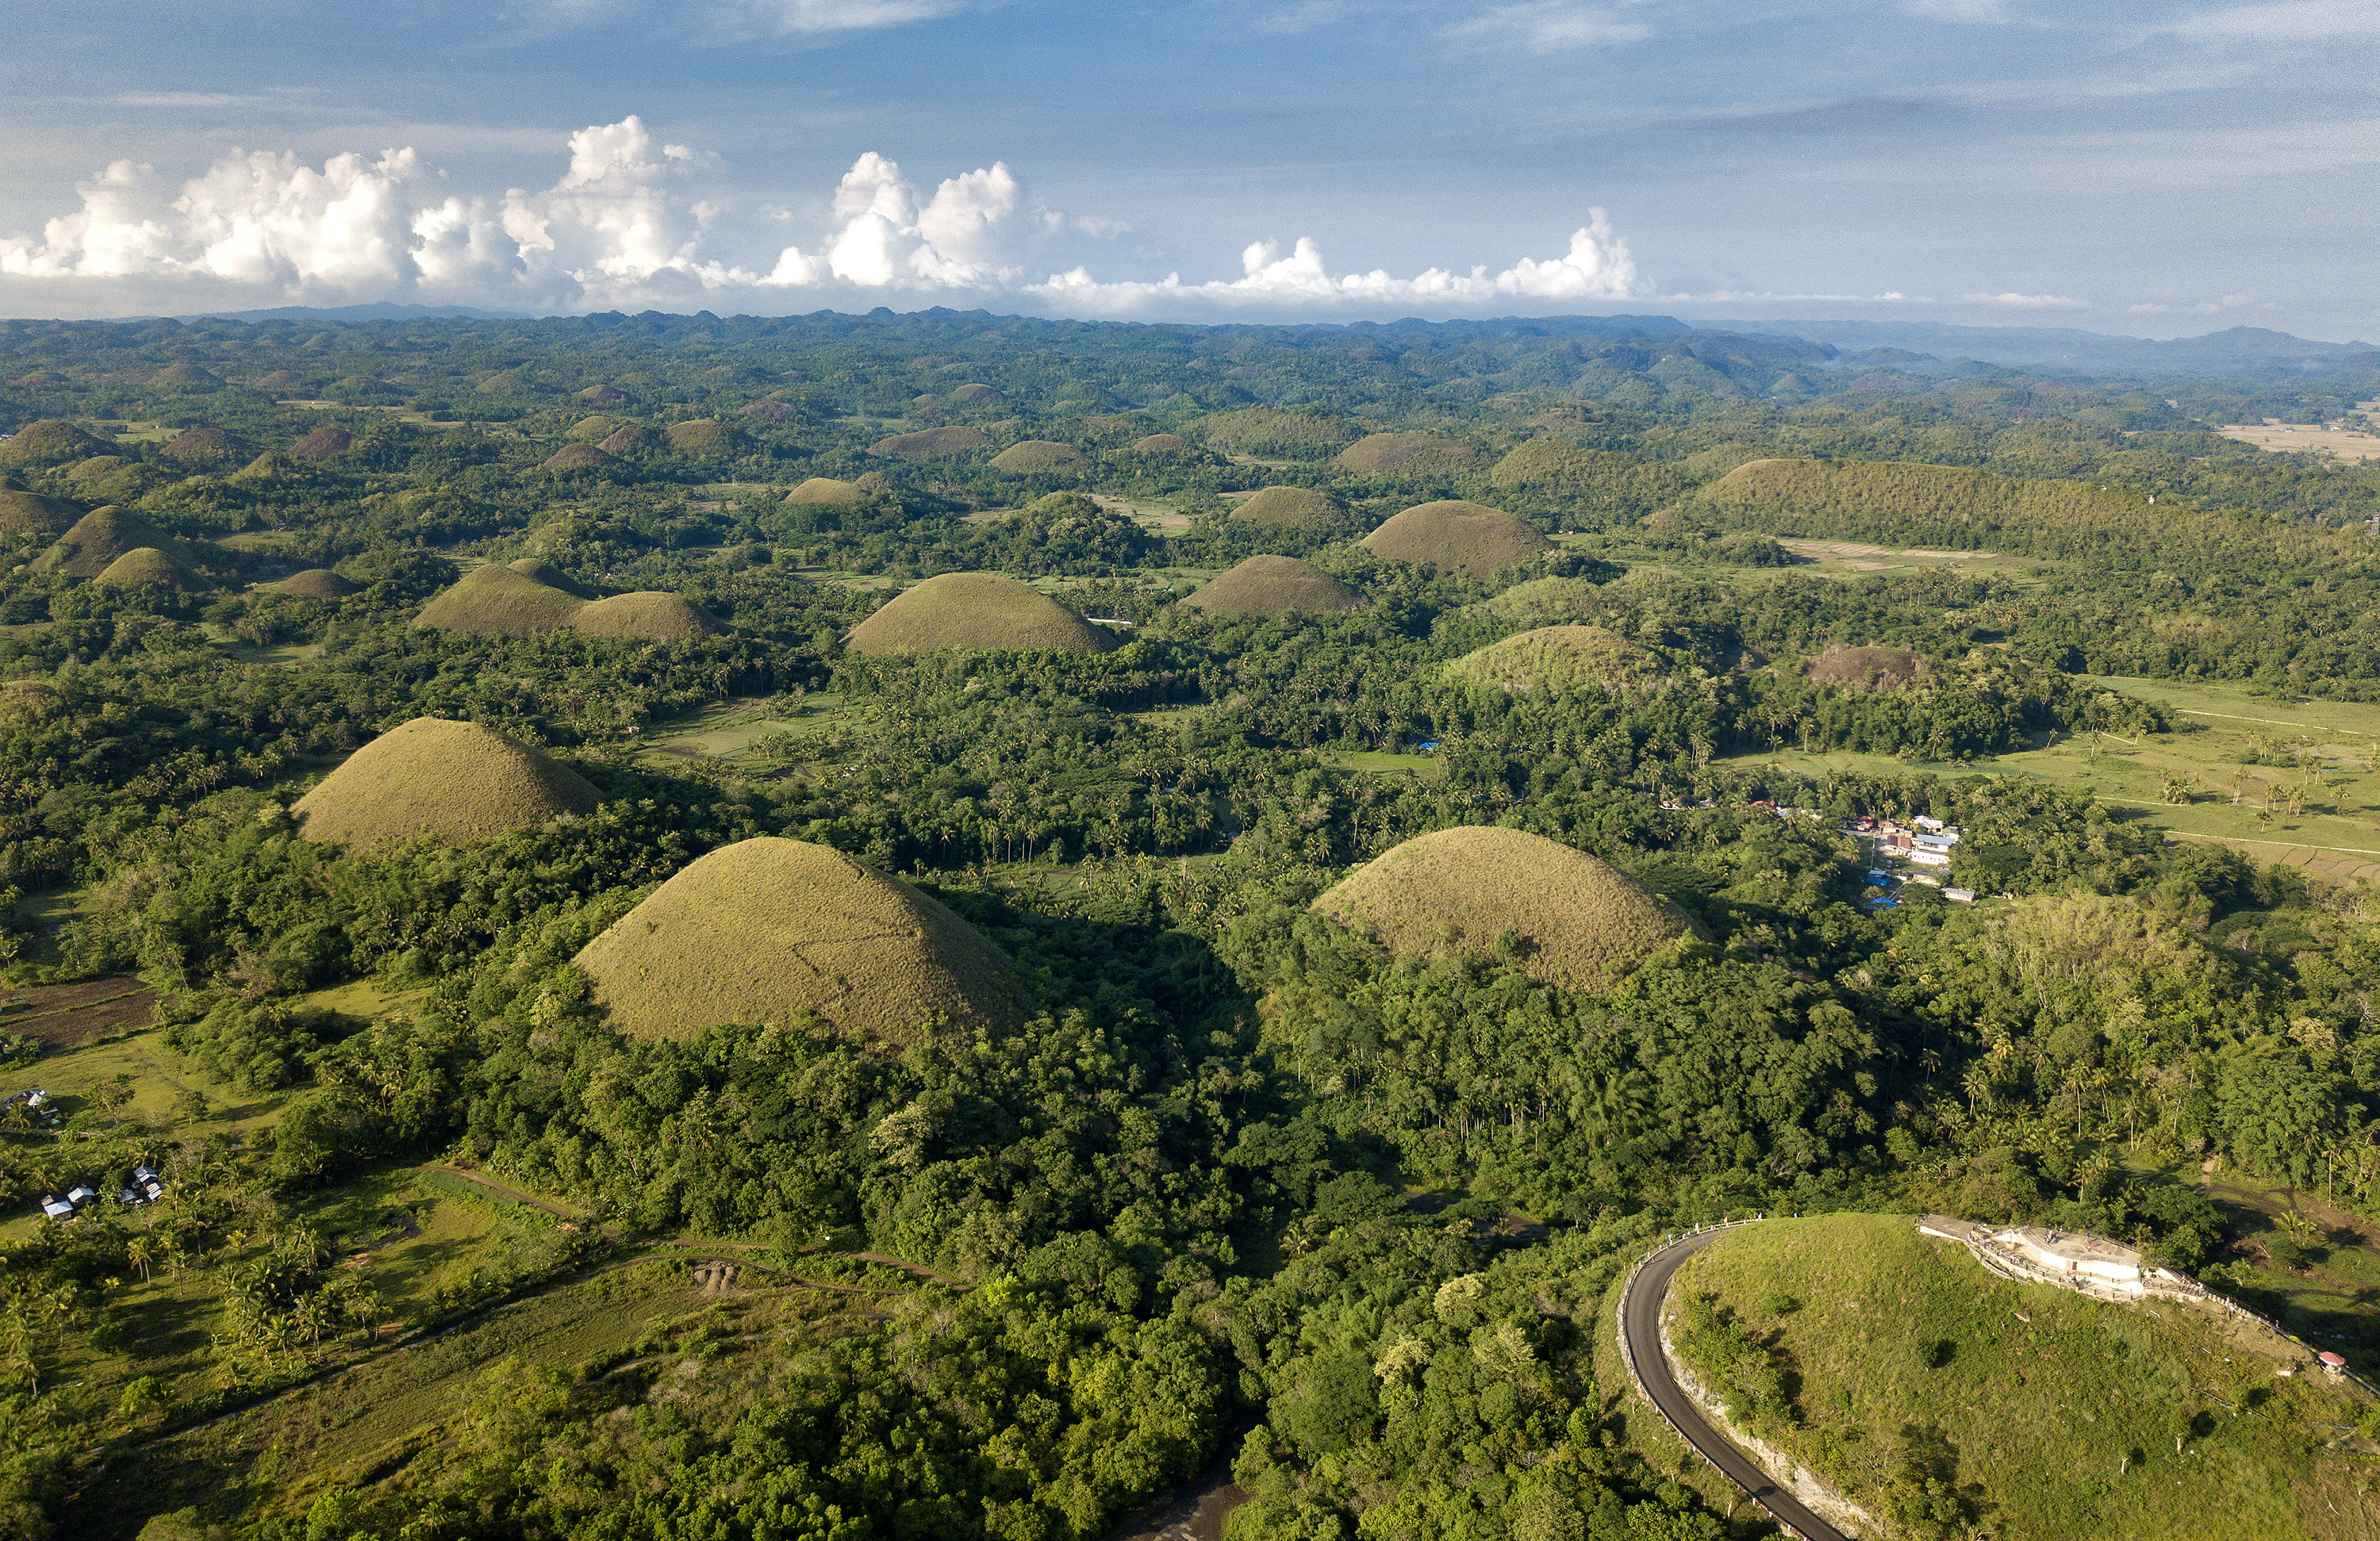 Stunning aerial view of the world-famous Chocolate Hills in Bohol